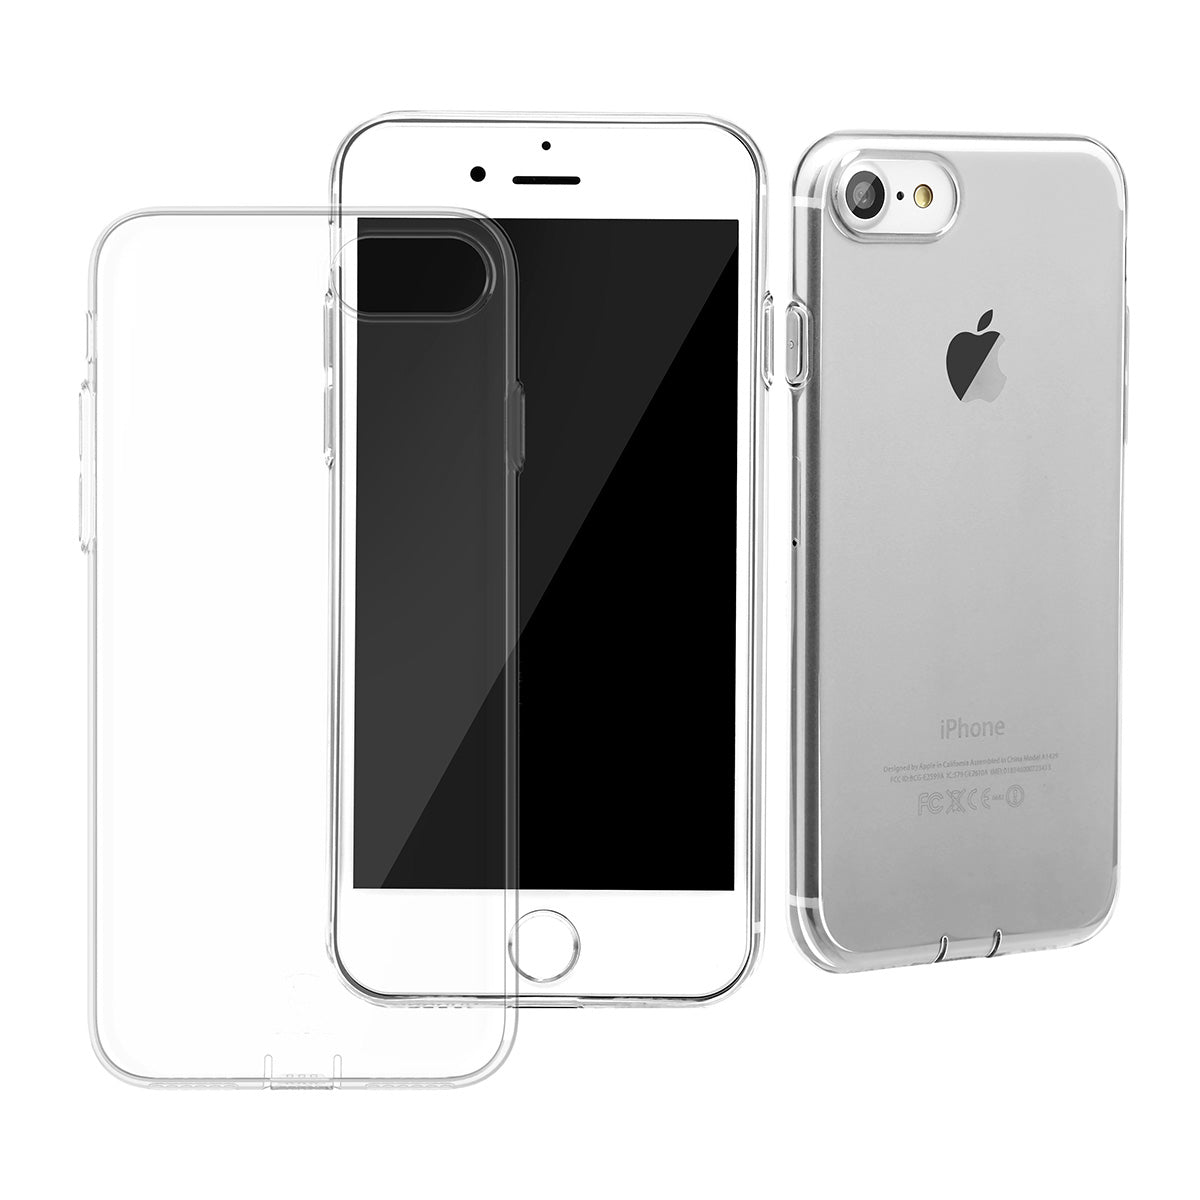 Ultra Slim Clear Transparent iPhone 7 Plus 5.5 inch Case with dust-proof plug